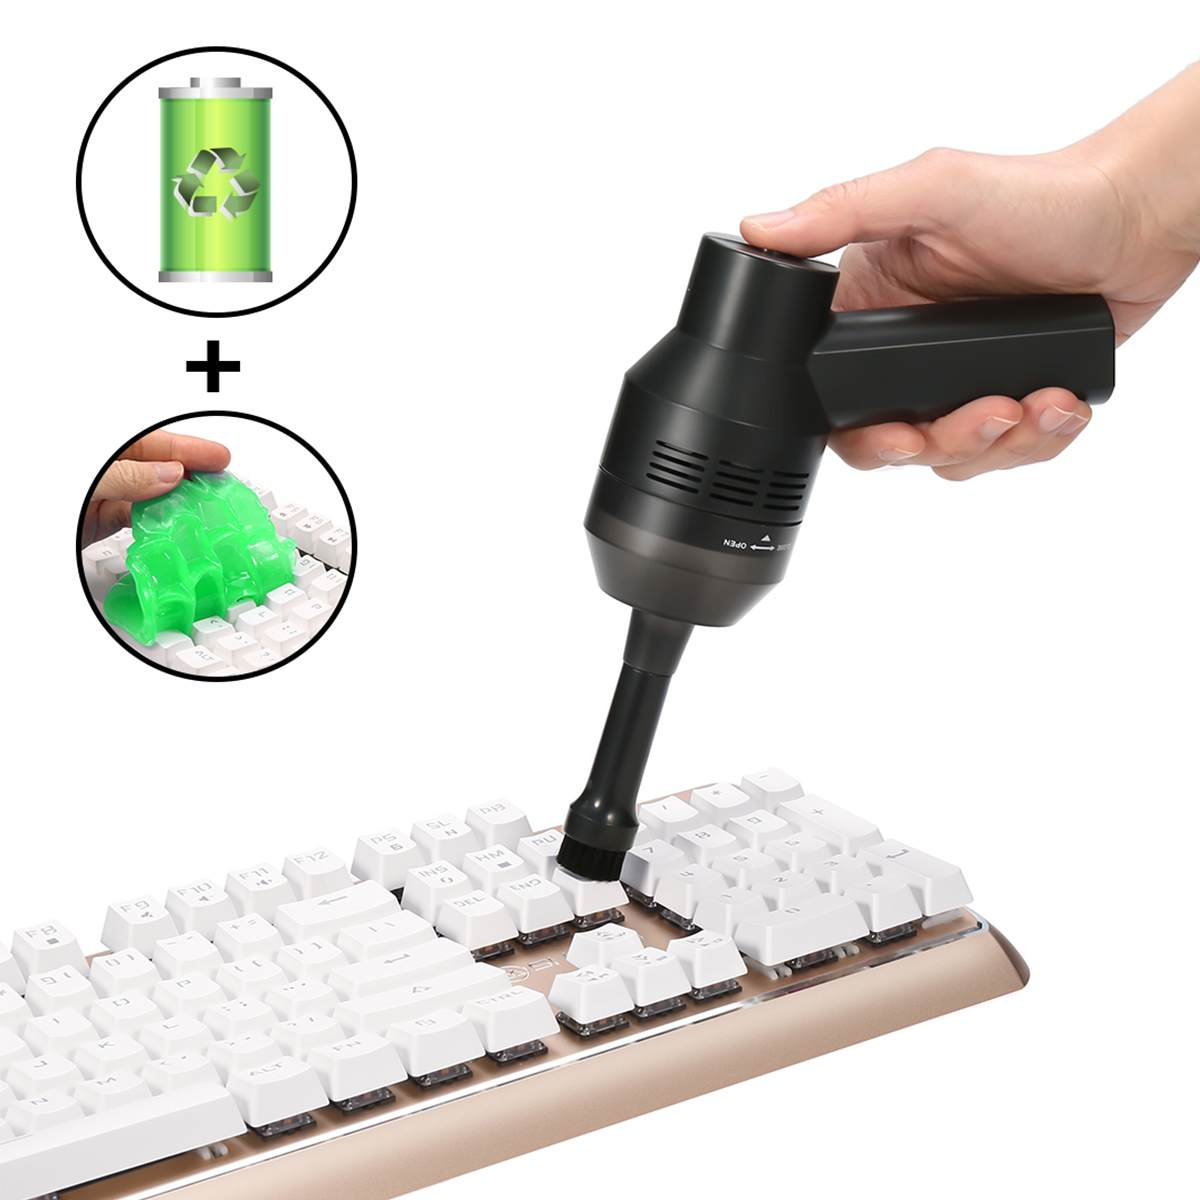 2019 USB Keyboard Cleaner With Cleaning Gel Rechargeable Mini Vacuum Cleaner Cordless For Car Auto Dust Computer Laptop Cleaning